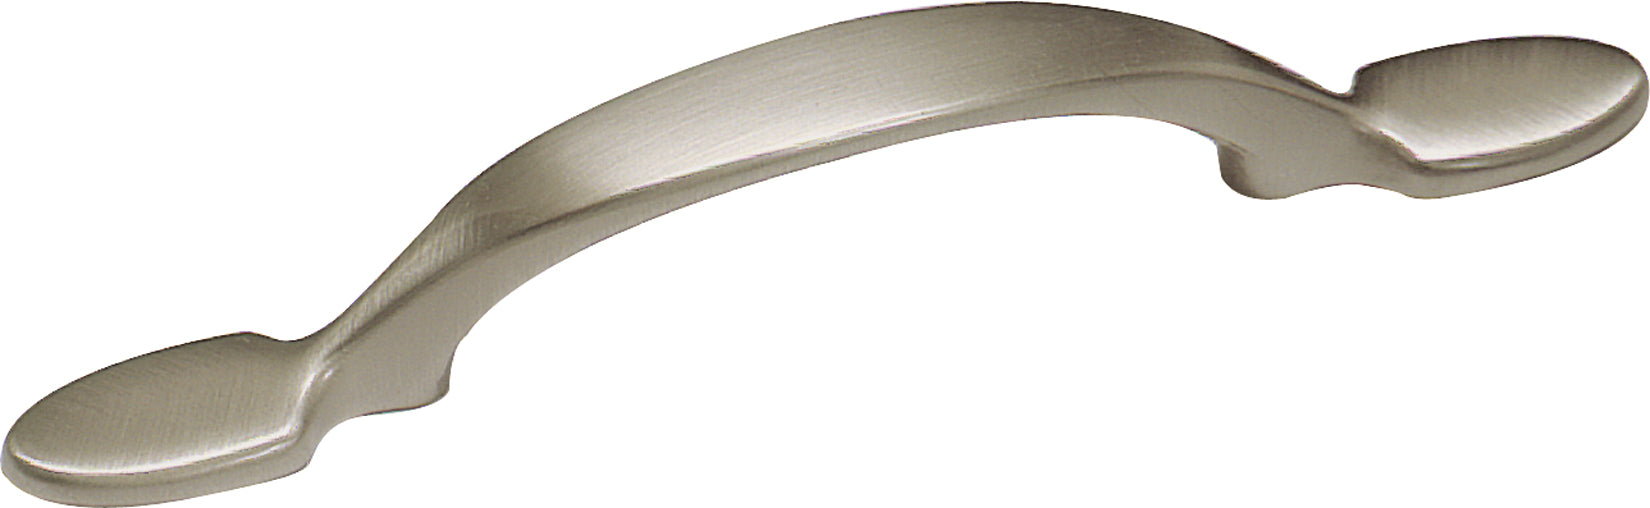 "3"" Handle Cabinet Pull Satin Nickel - Allison Value Collection"